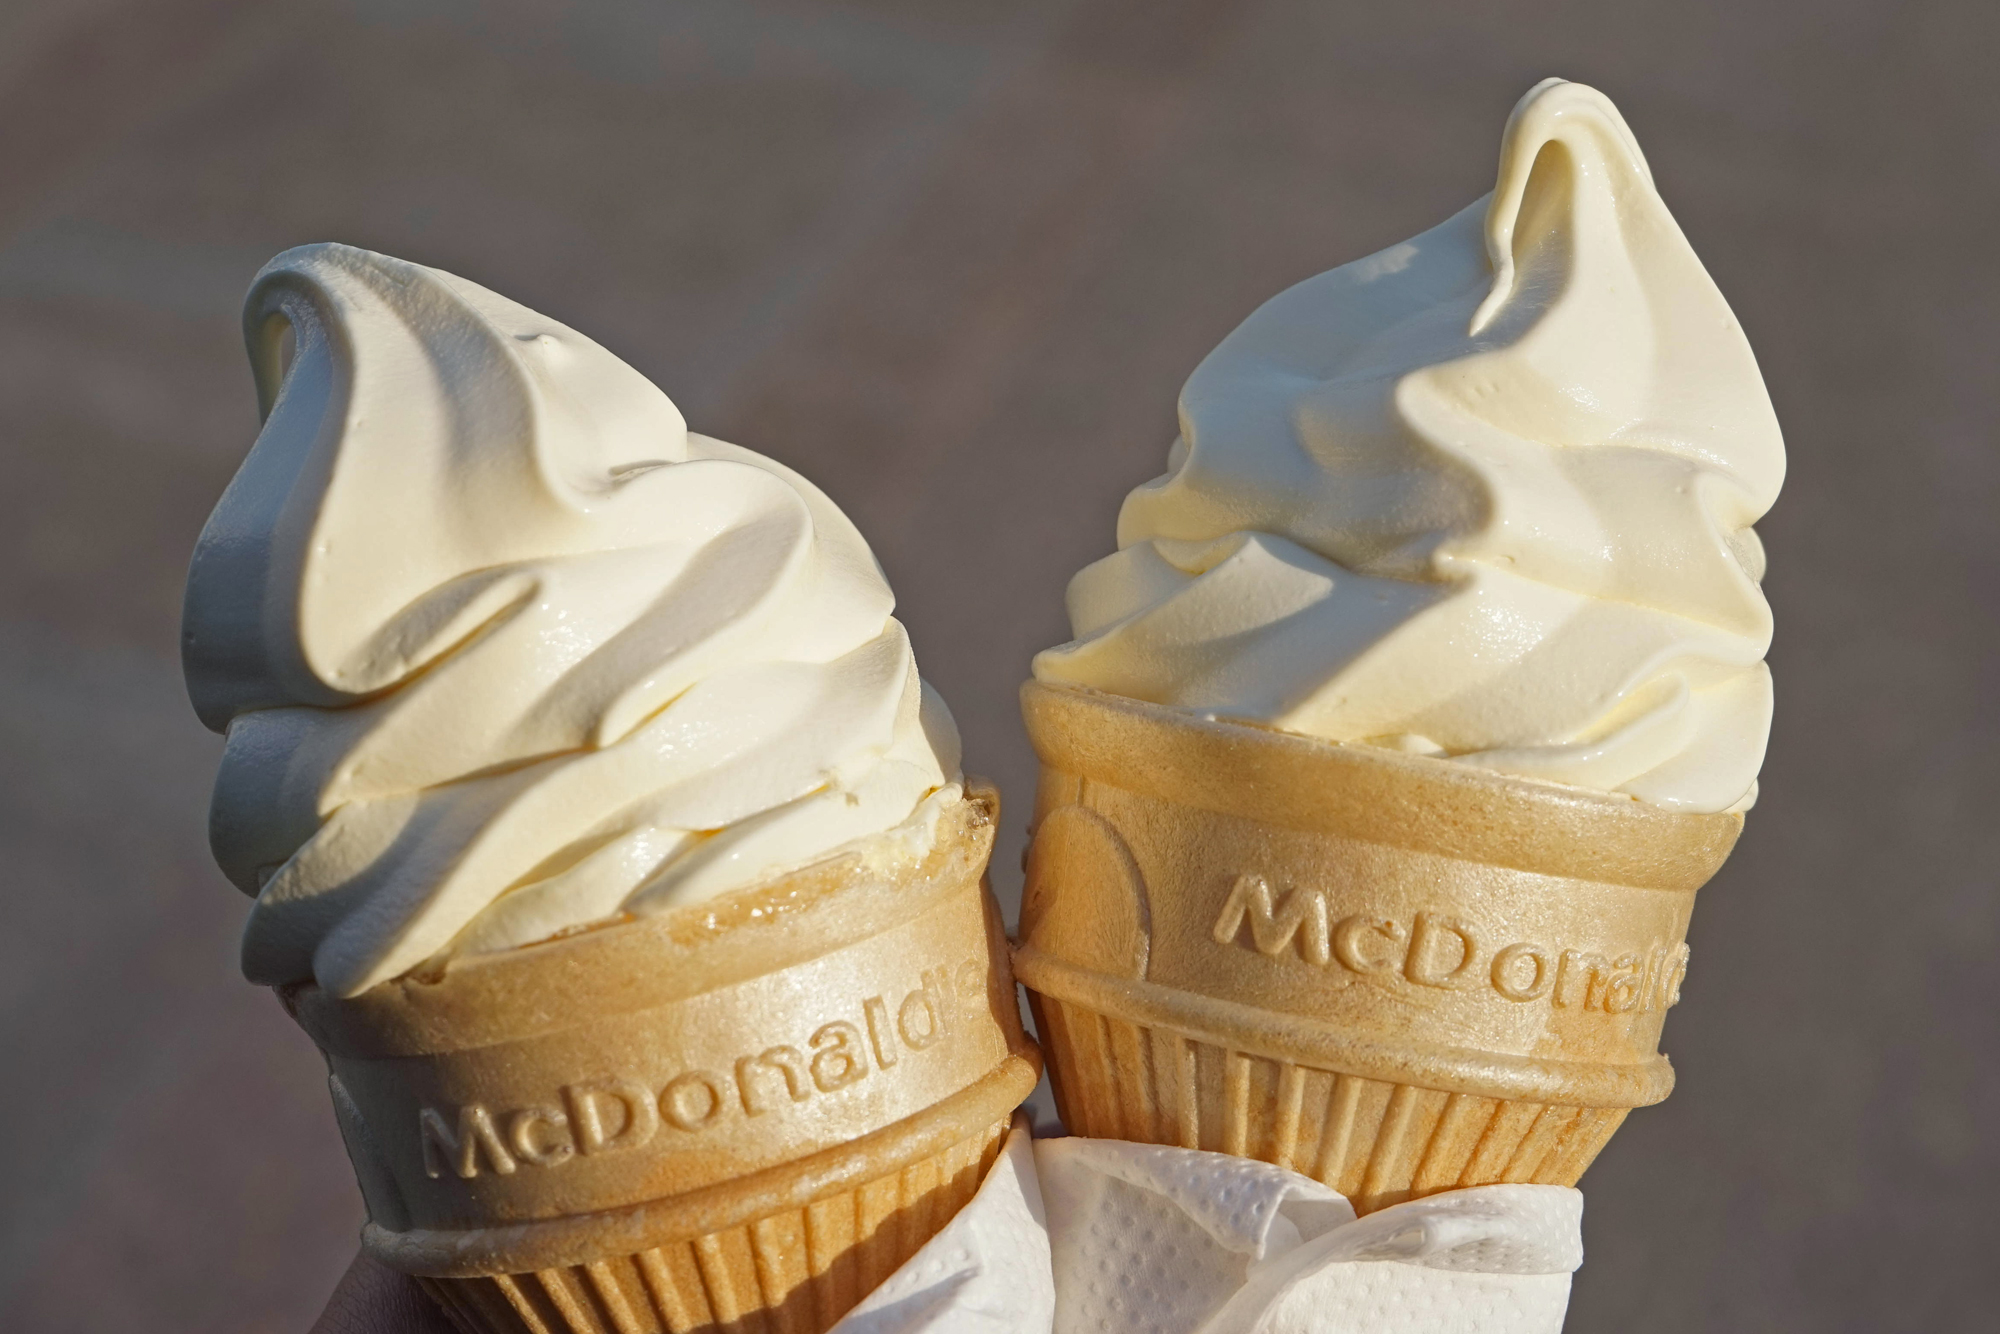 McDonald's Ice Cream Cones